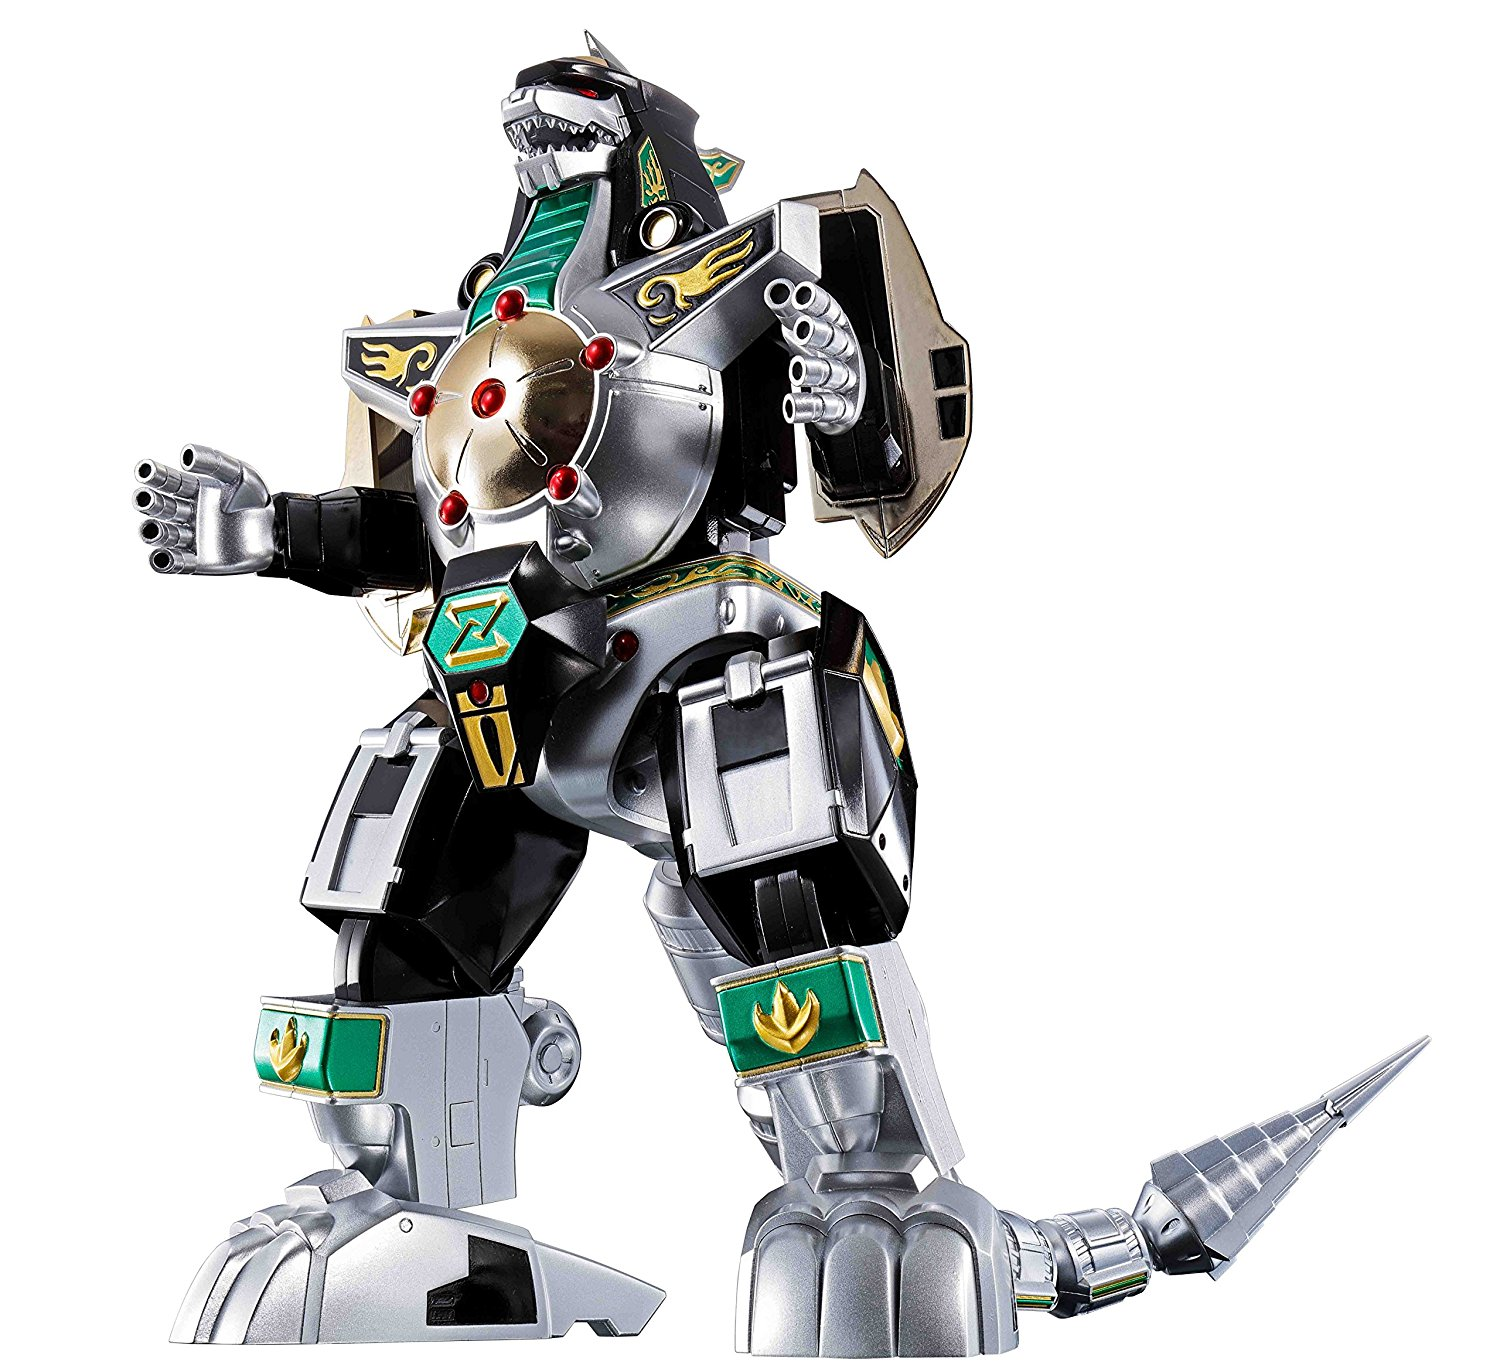 Bandai Chogokin GX-7 Dragonzord Soul of Chogokin Action Figure by Bandai